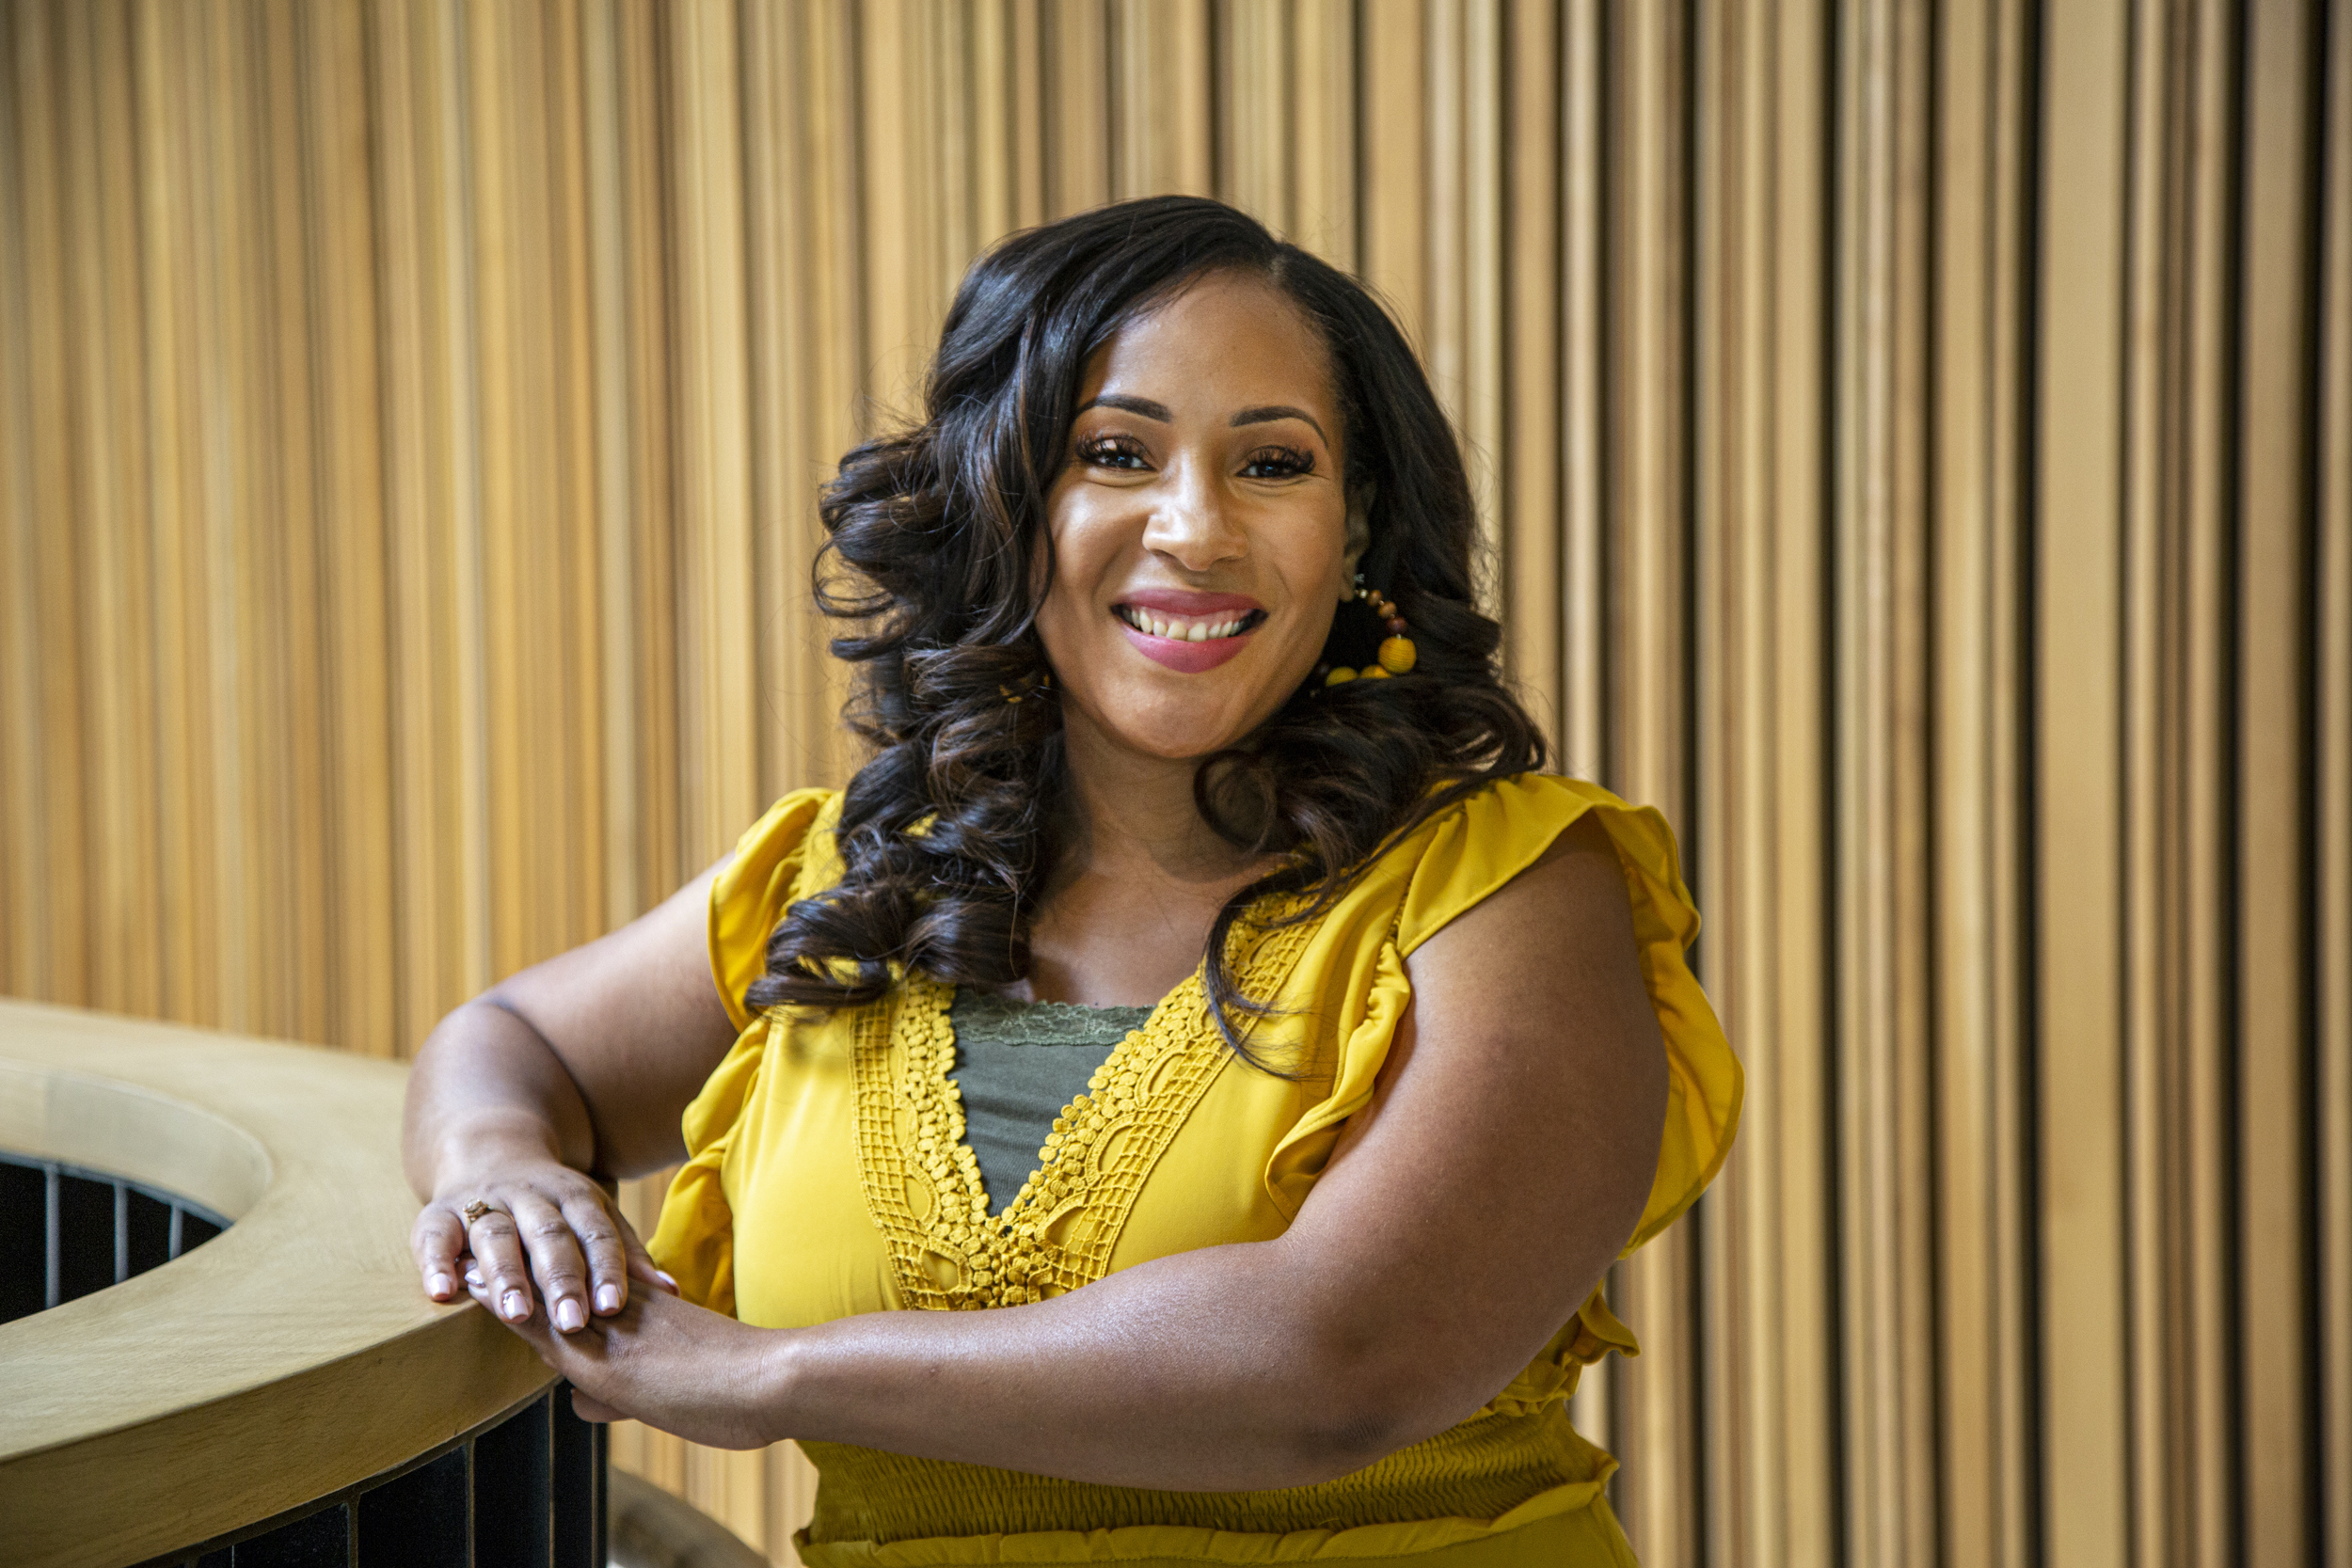 Greenpeace appoints Ebony Twilley Martin  as its first Black co-executive director